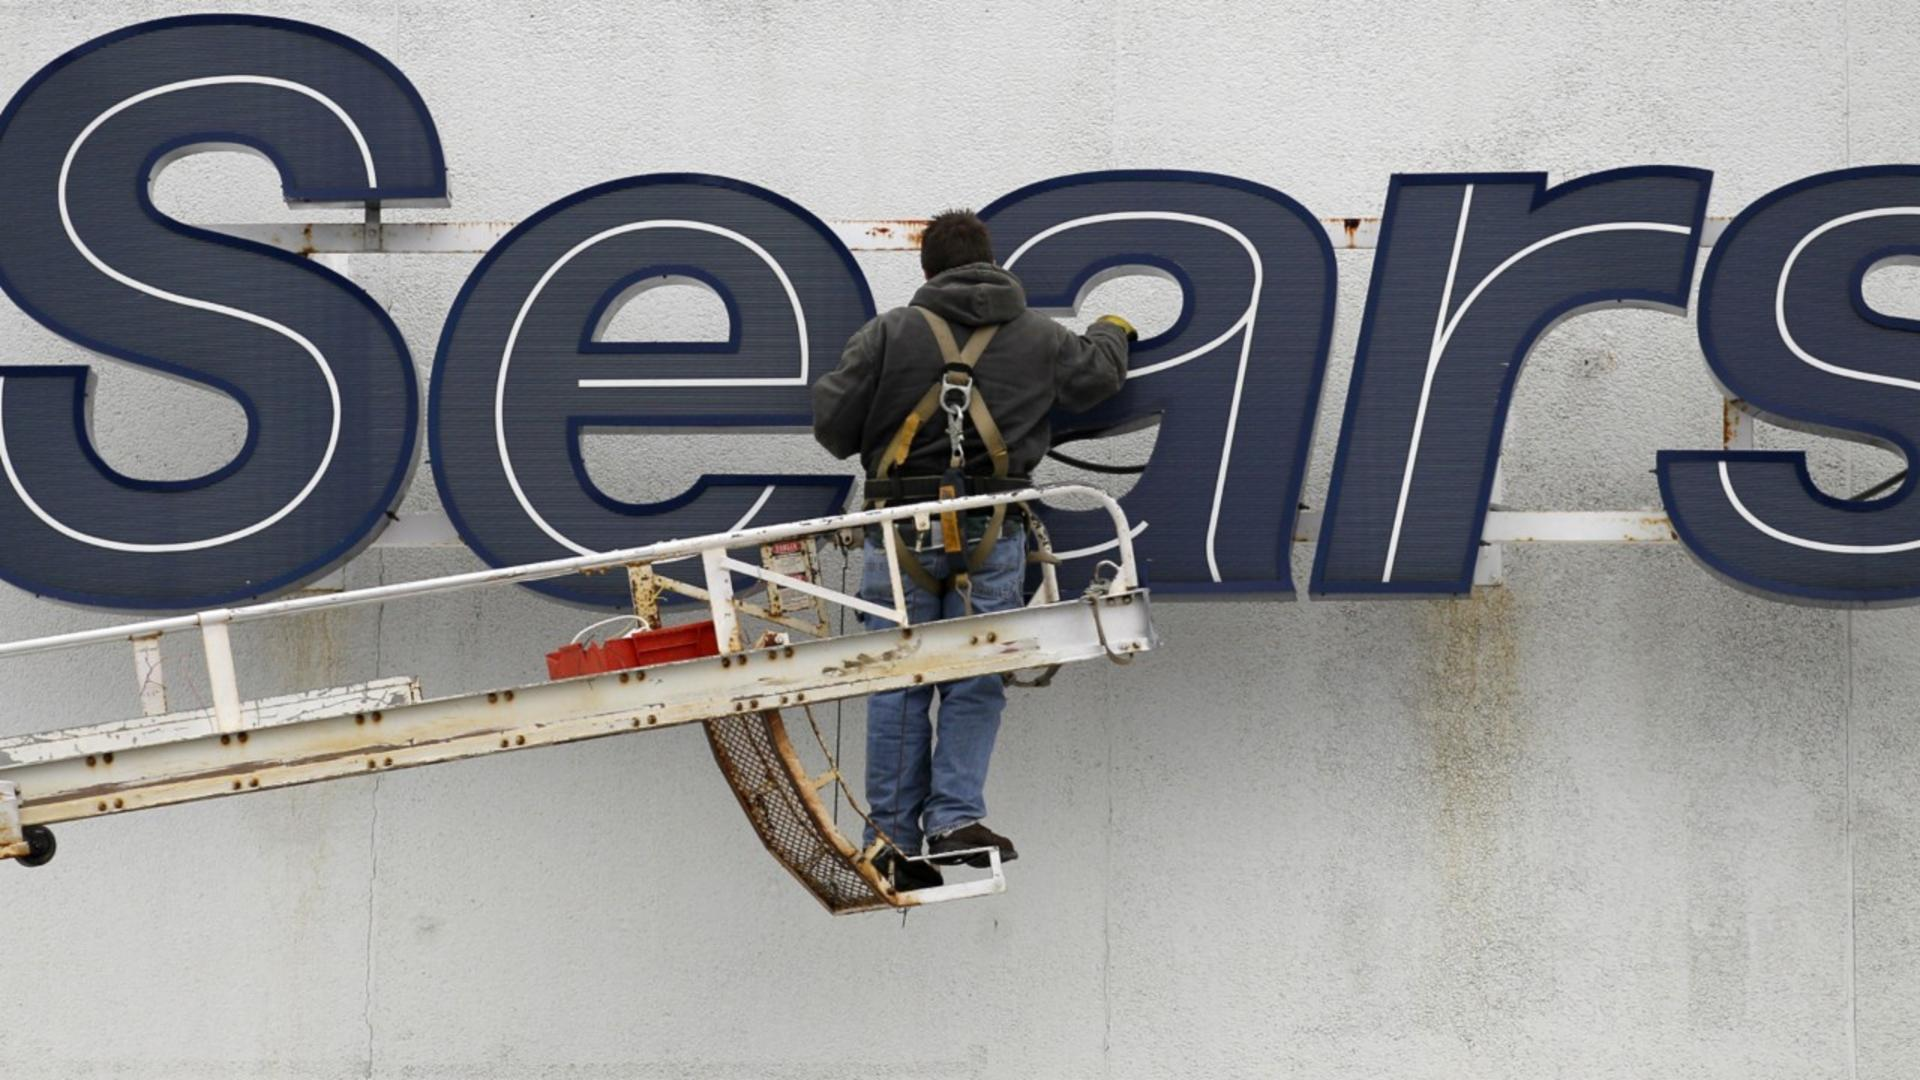 National News - Sears Files for Bankruptcy Monday Amid Debt Issues